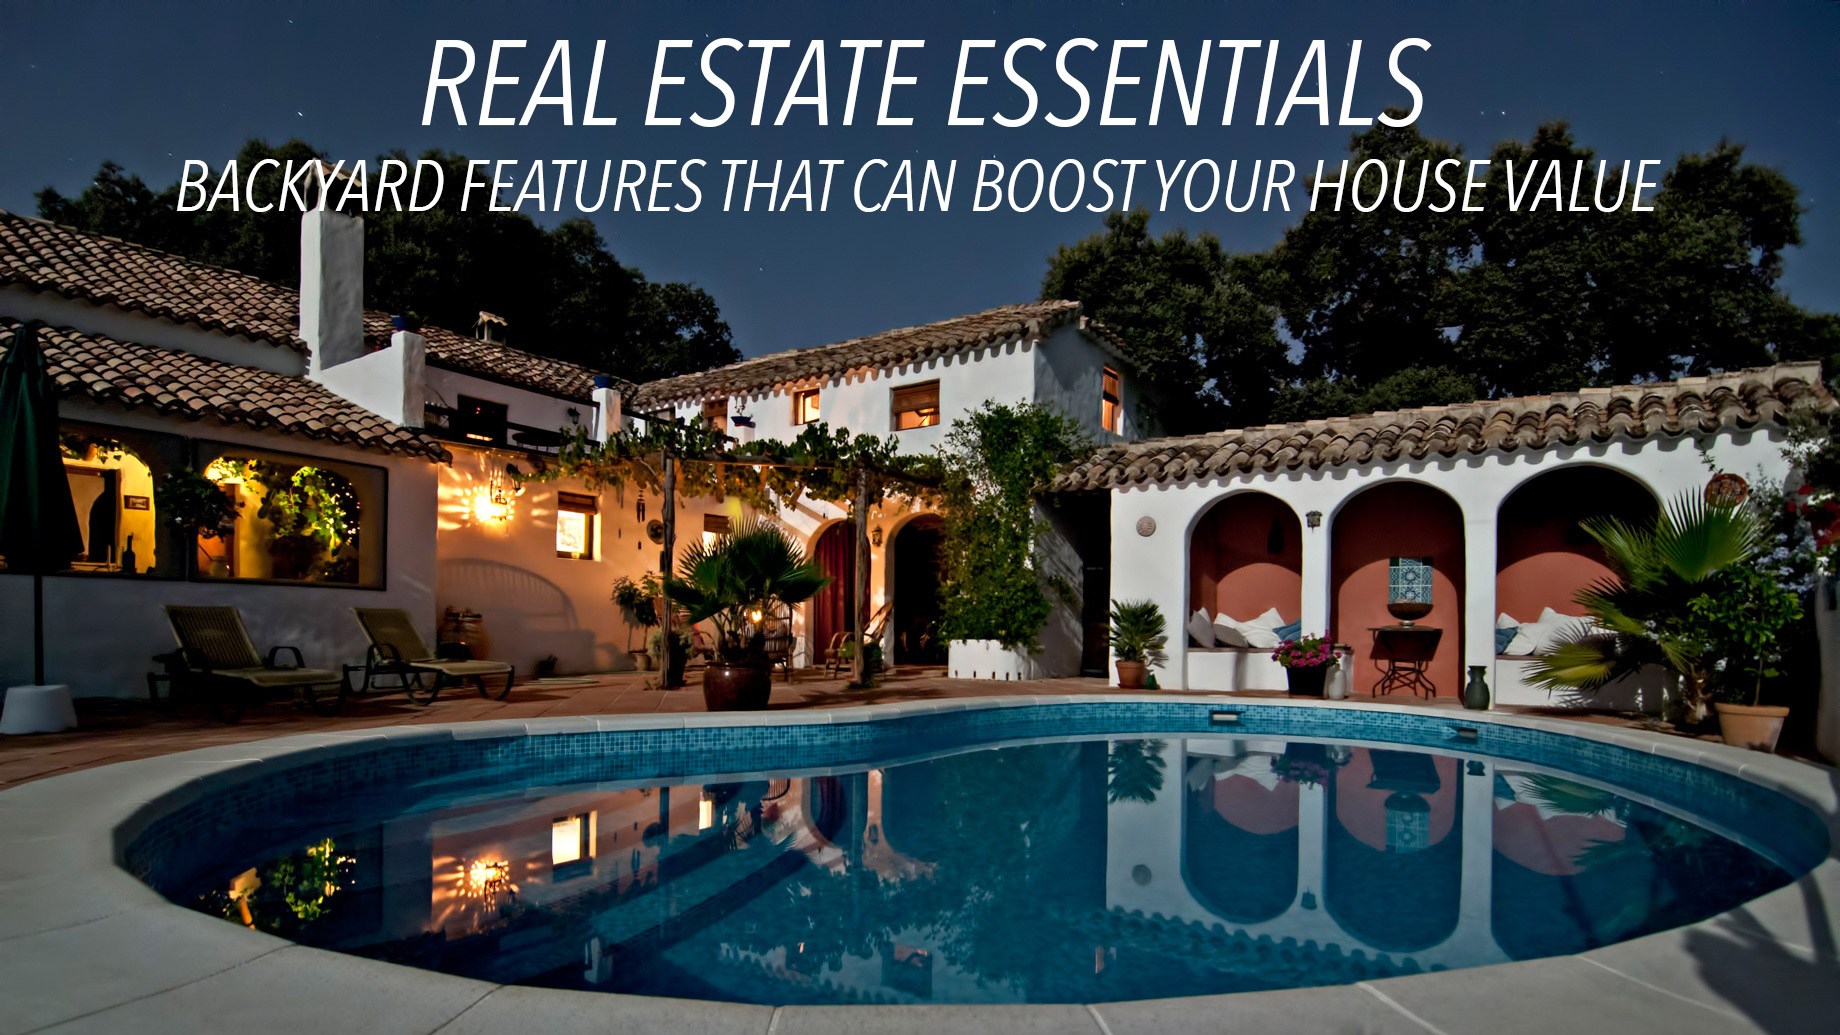 Real Estate Essentials - Backyard Features That Can Boost Your House Value